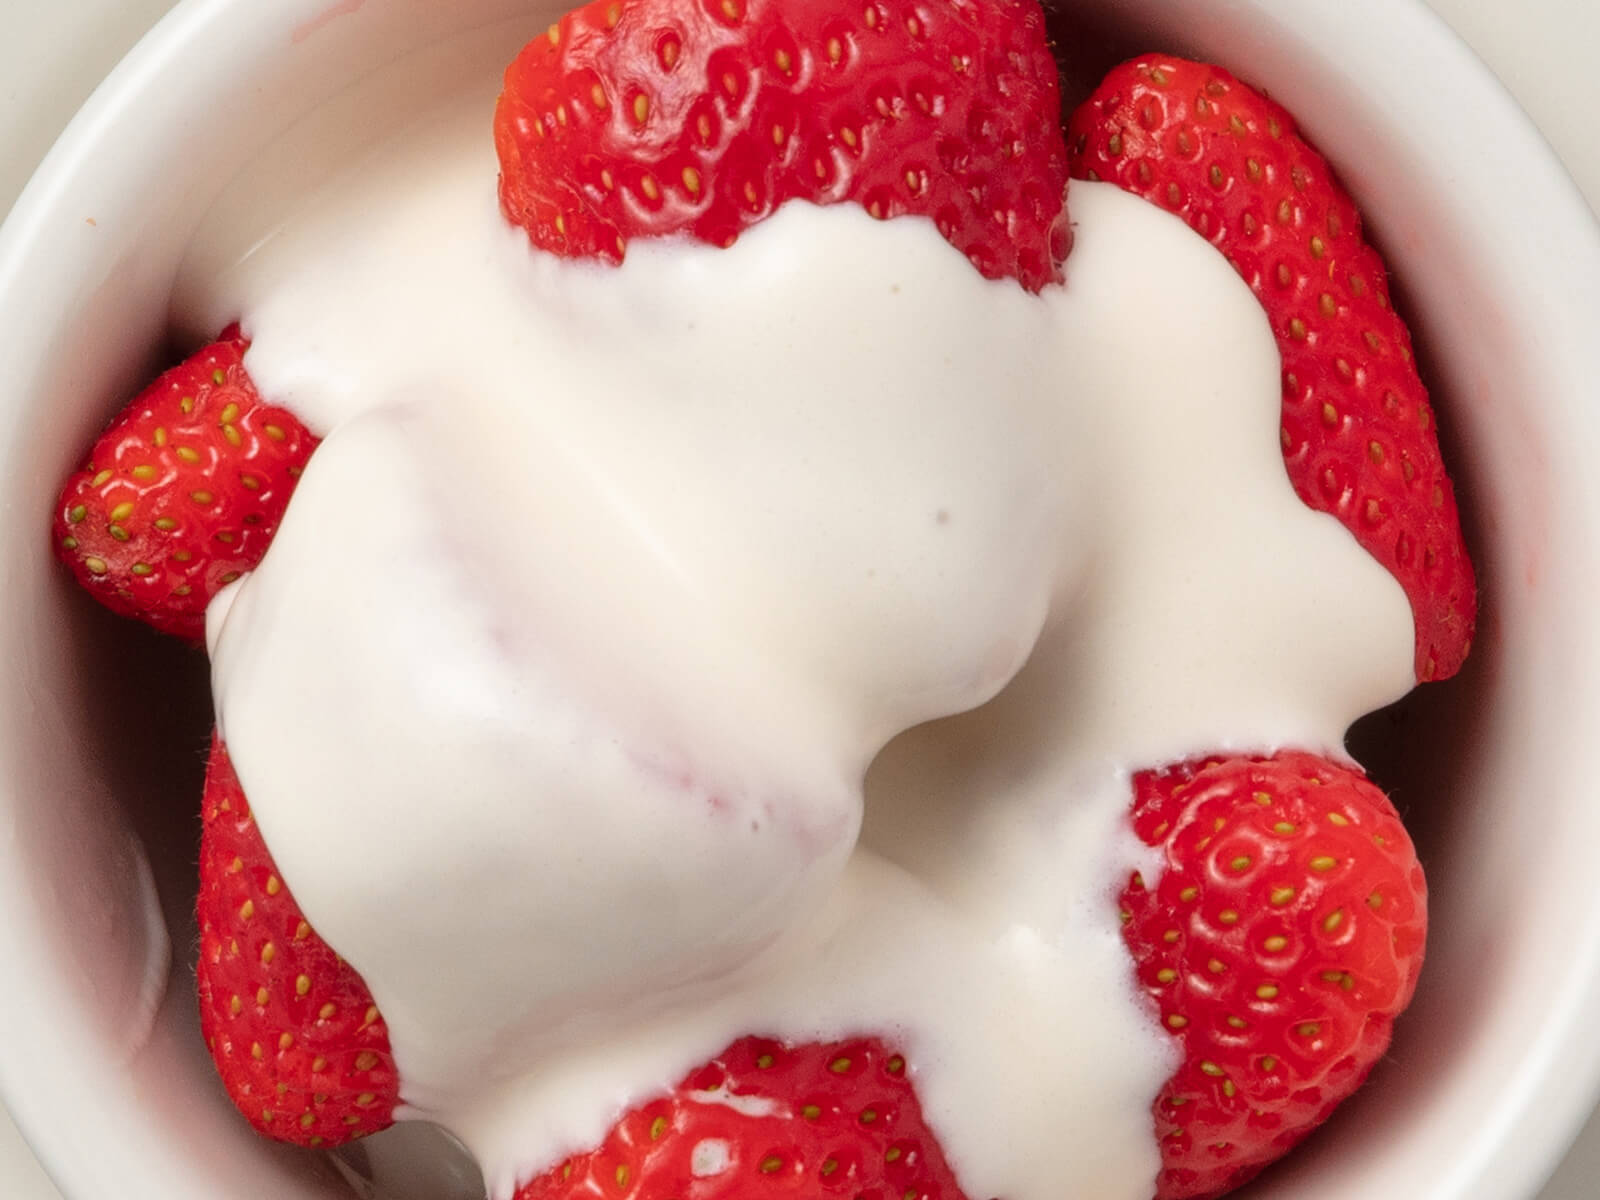 Strawberries Romanoff